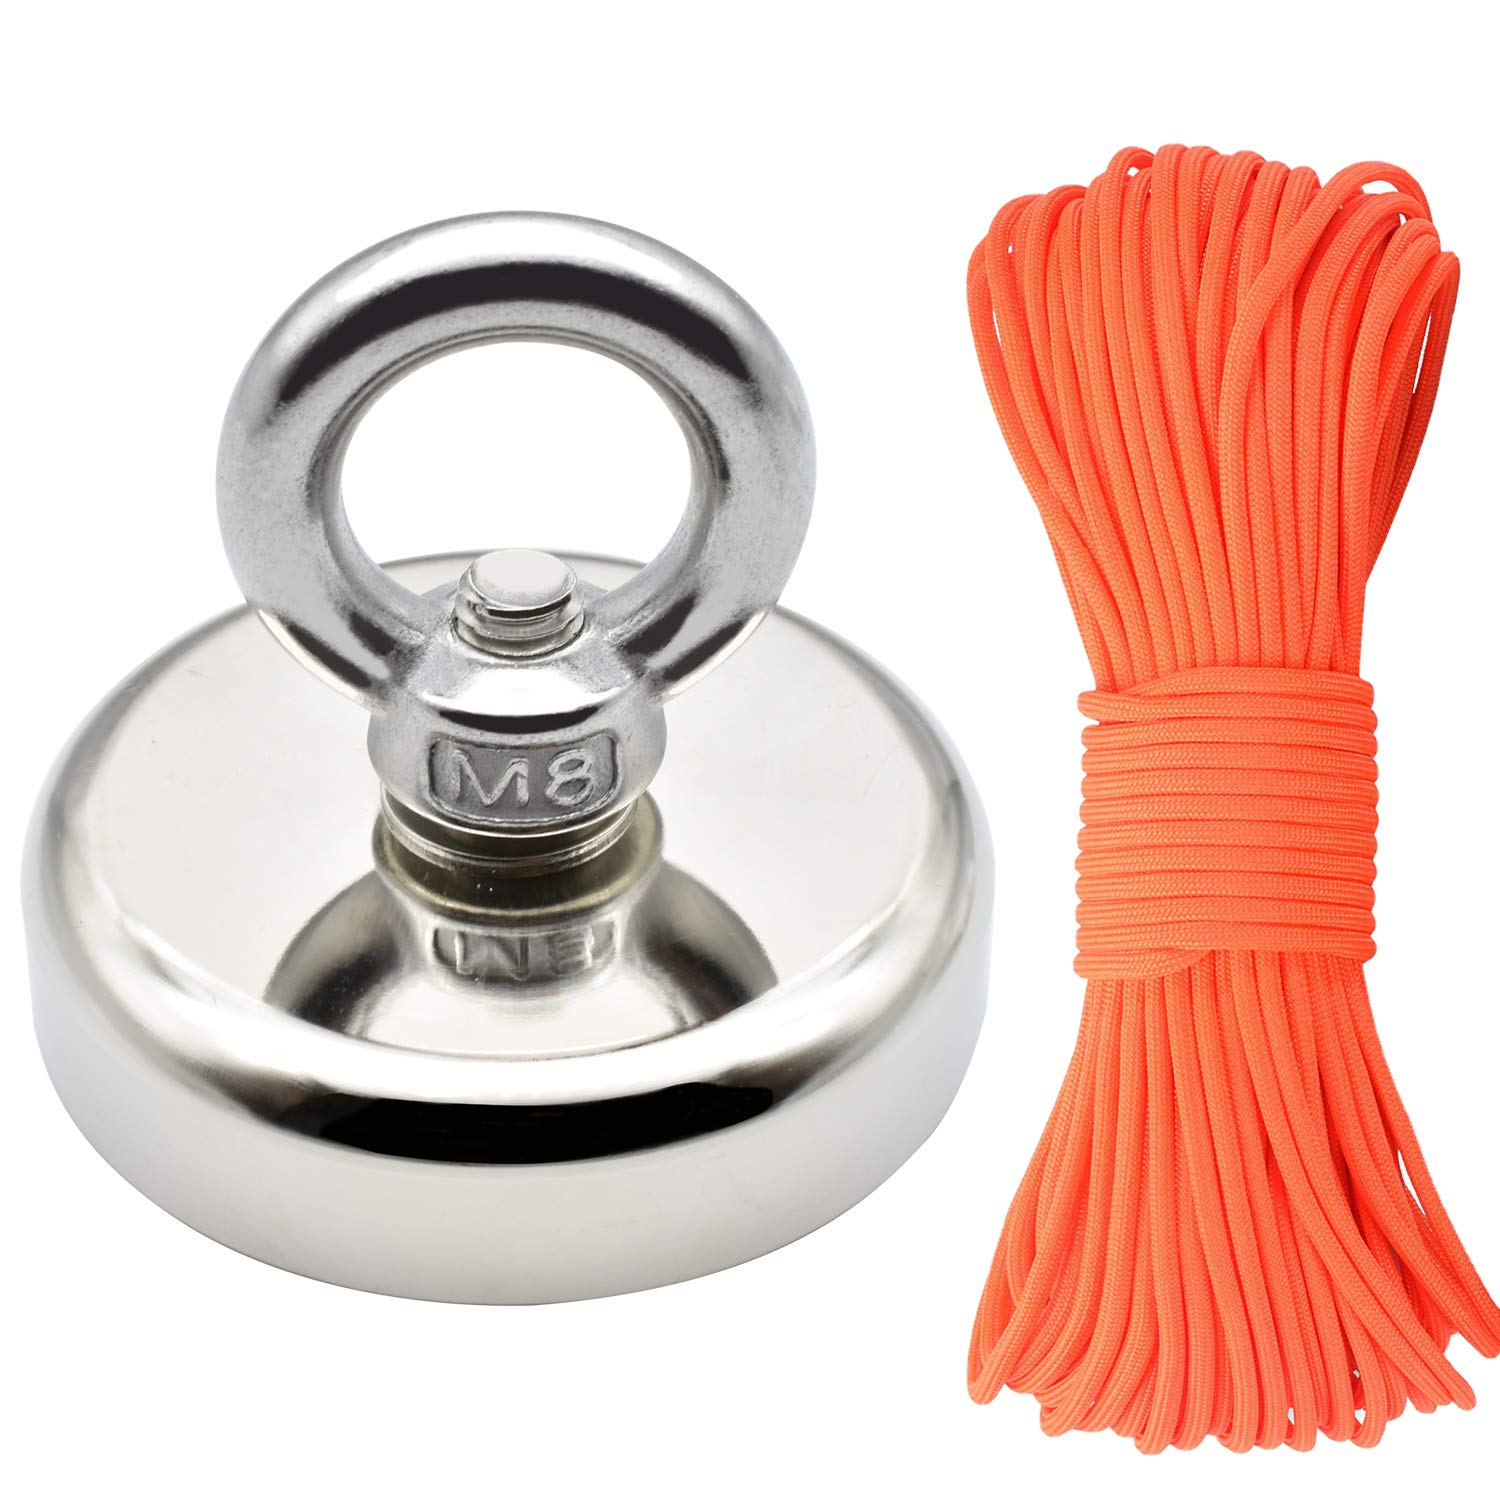 HHOOMY Super Strong Fishing Magnet, 350lbs Force Rare Earth Neodymium Magnet with Countersunk Hole and Eyebolt, Diameter 2.36 inch with 100 Feet Rope, Great for Magnetic Fishing and Salvage in River